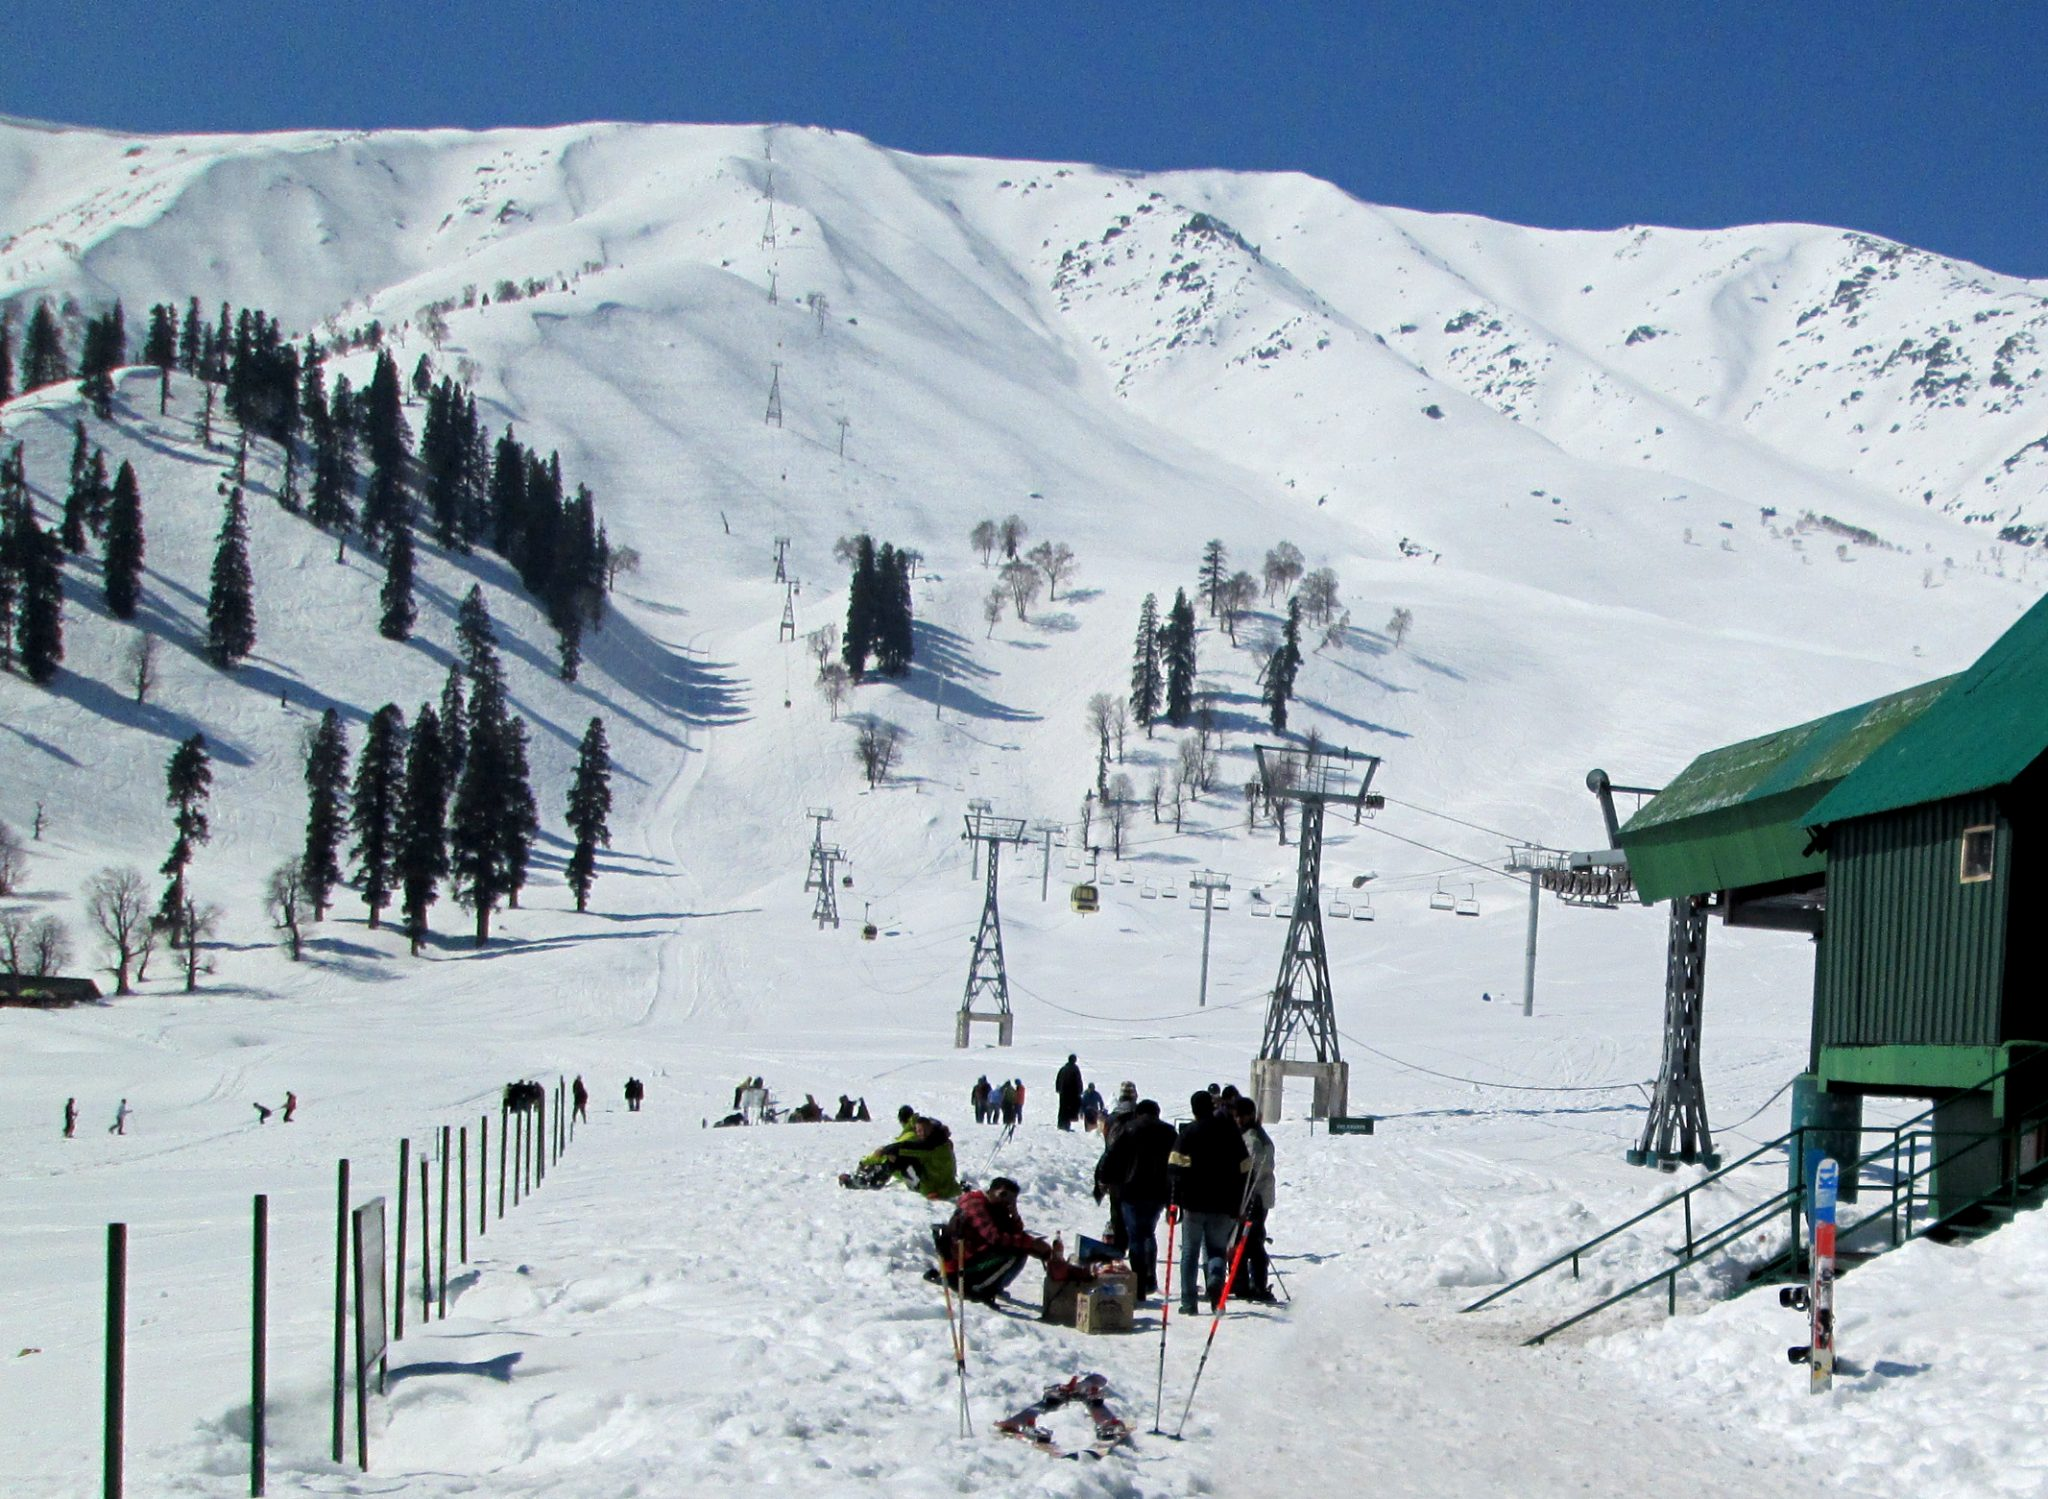 Kangdoor ski slopes of gulmarg, India - Skiing in Asia